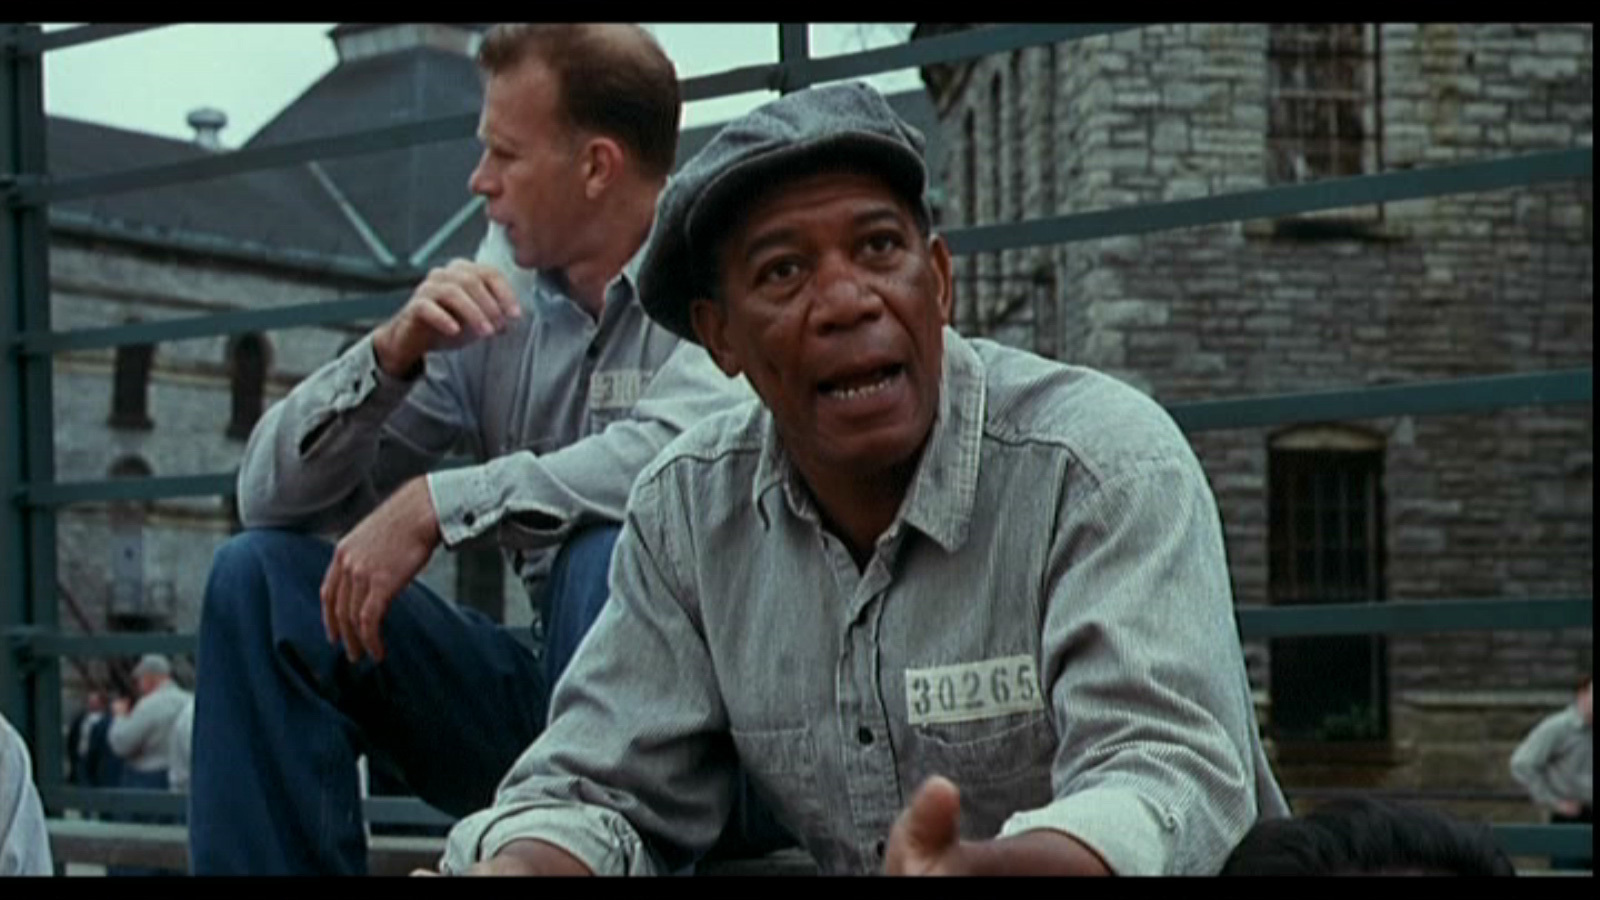 """theme of hope in shawshank redemption Movie analysis: """"the shawshank redemption"""" — themes another in our  but  the story's central theme has to be: hope andy embraces it to."""